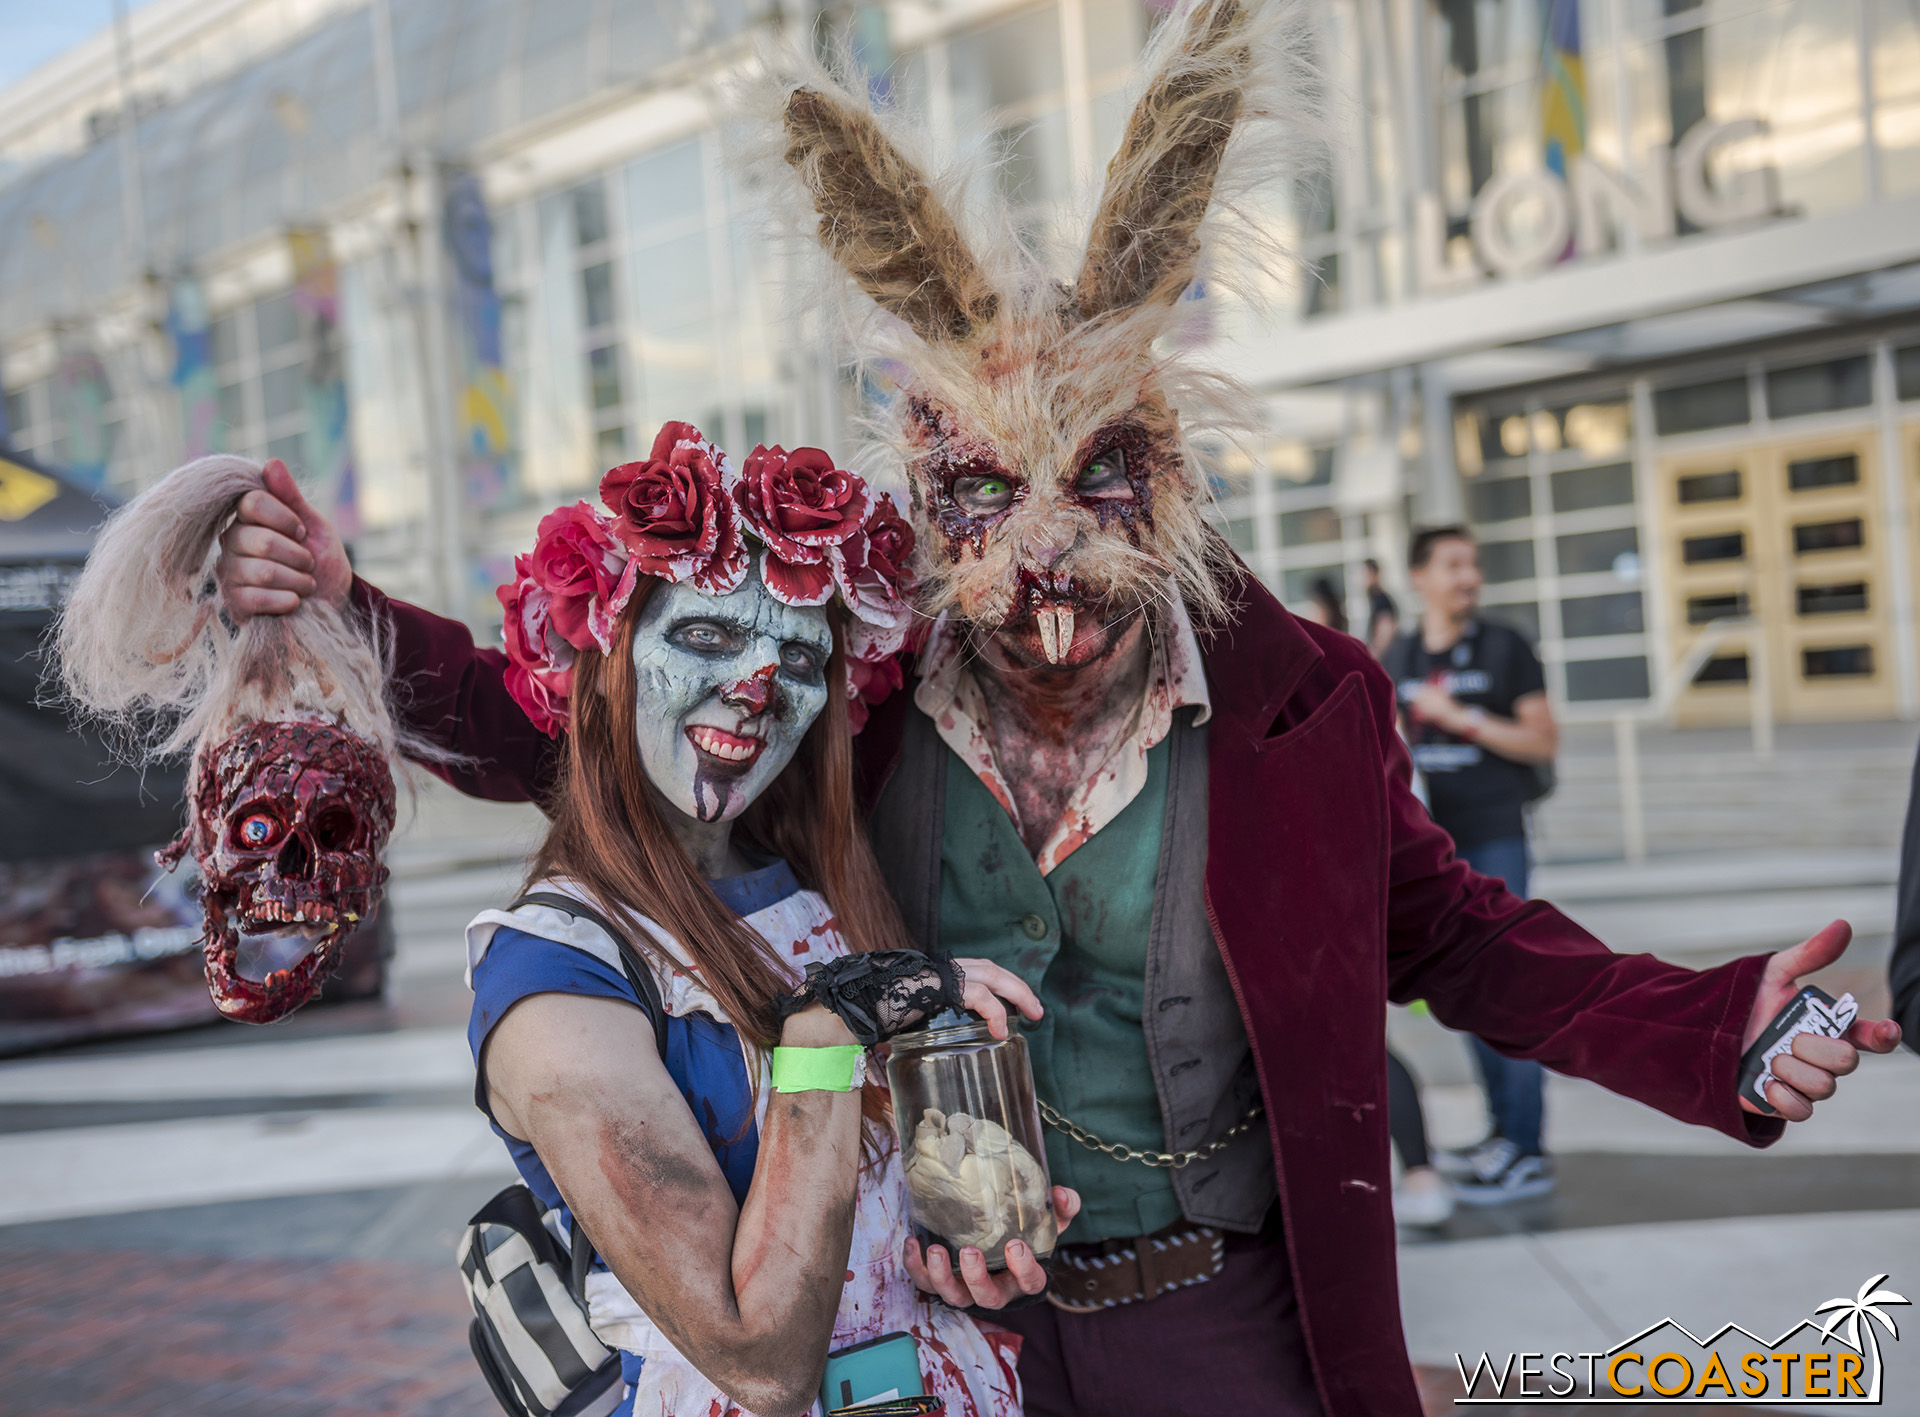 Just a regular demented Alice and March Hare. Not a Fright Fest one at all.